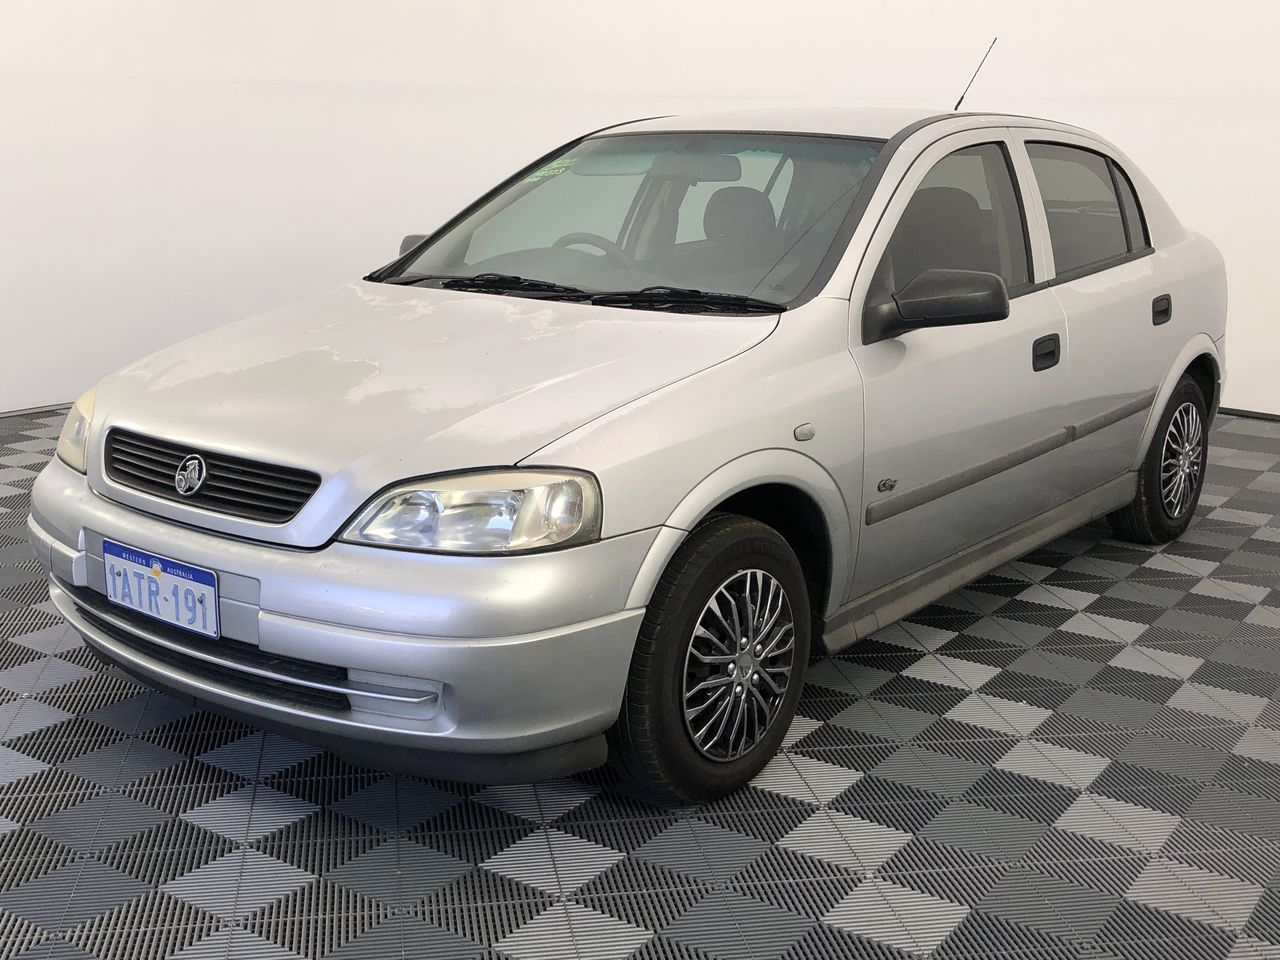 2000 Holden Astra City TS Manual Hatchback